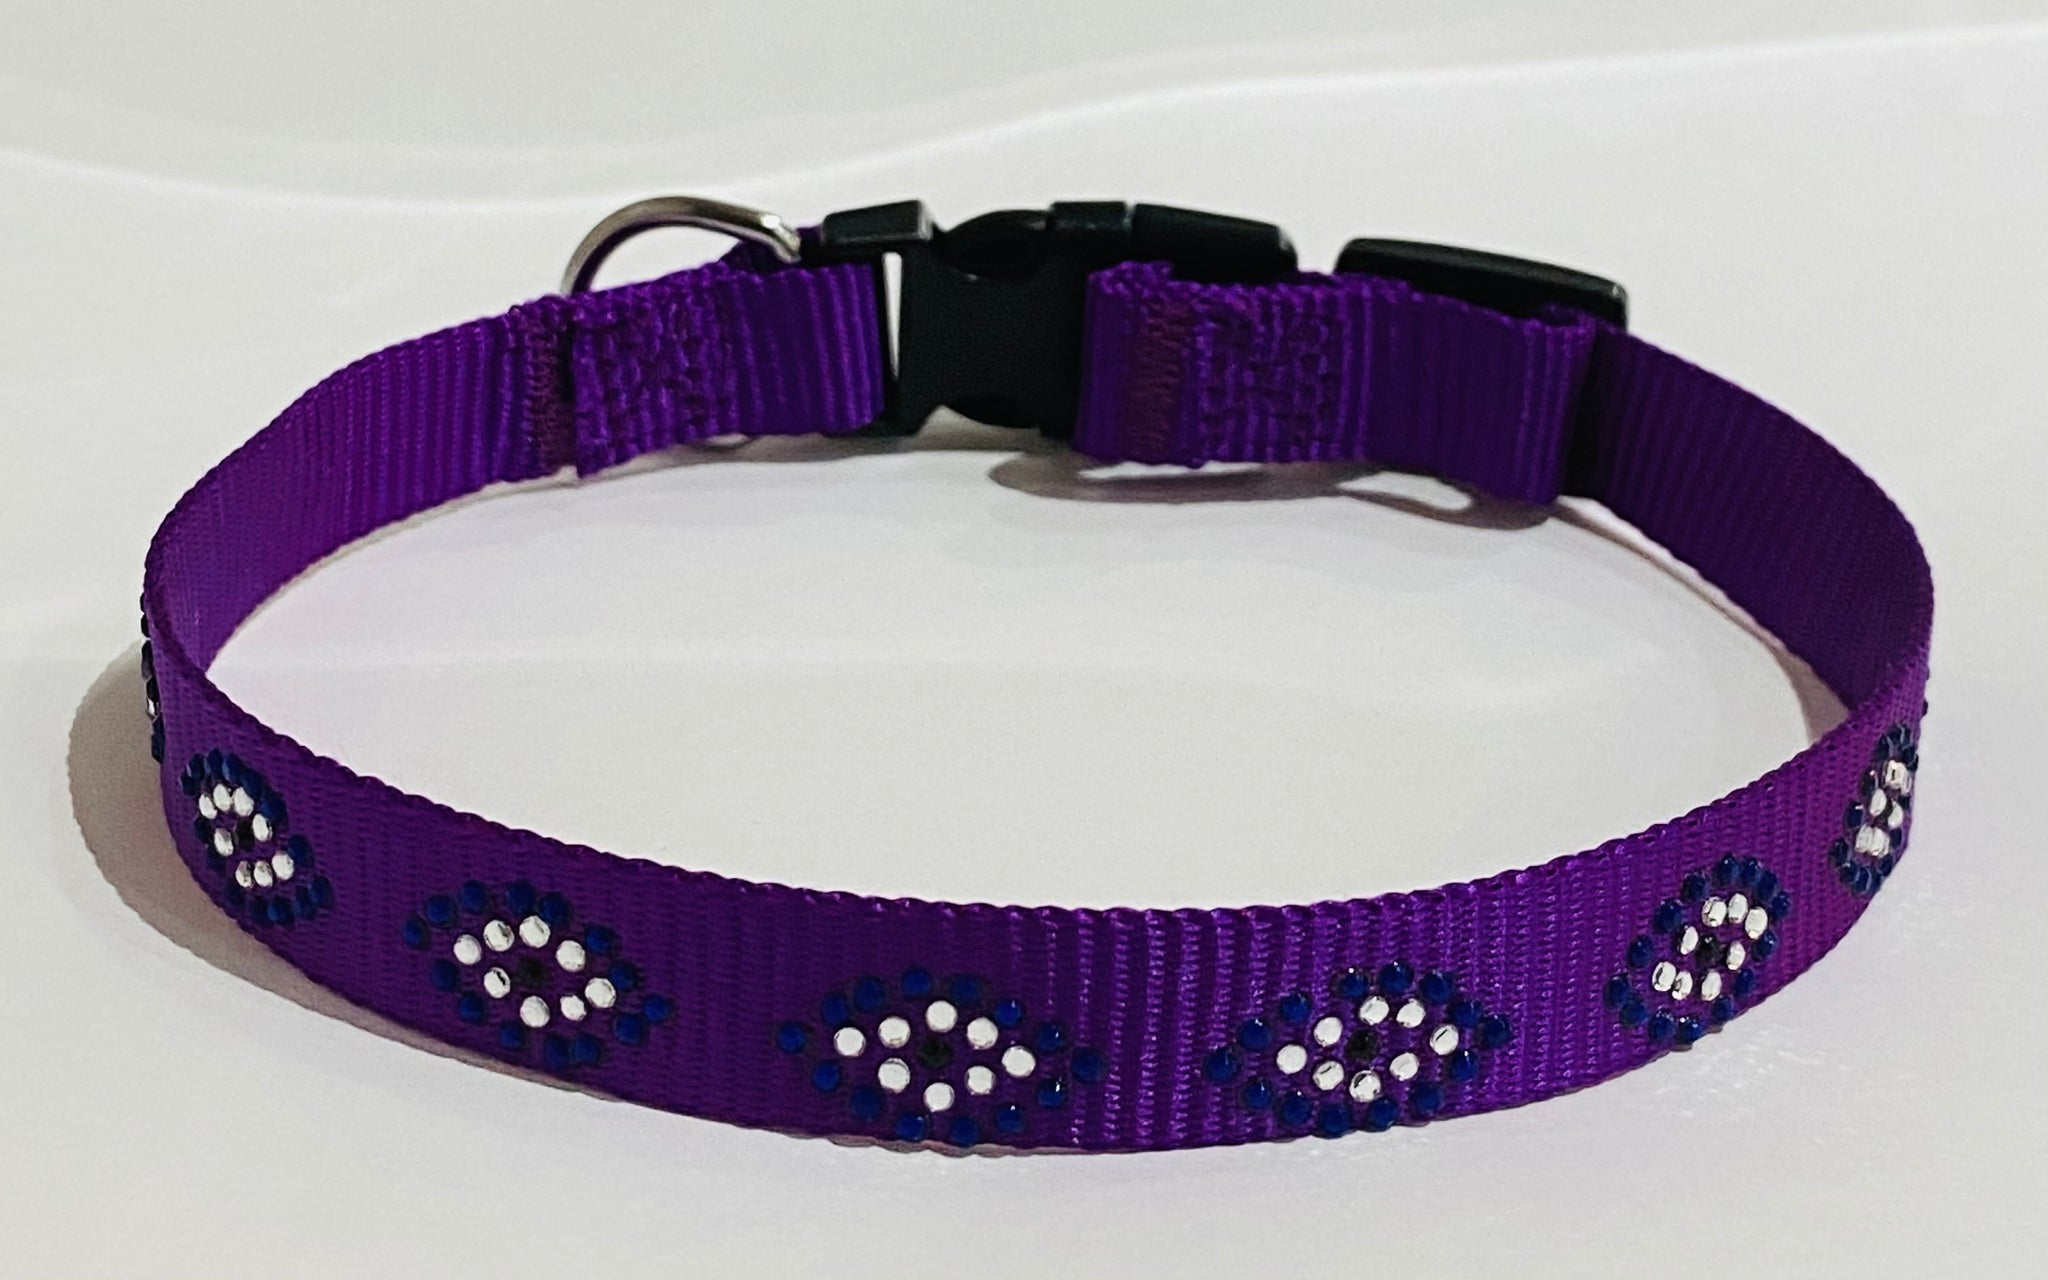 Evil Eye Custom Dog Collar, Fancy, Rhinestone Collar, Small, Medium, Large, Sparkle, Bling Collar, Durable Nylon Collar with Duraflex Buckle